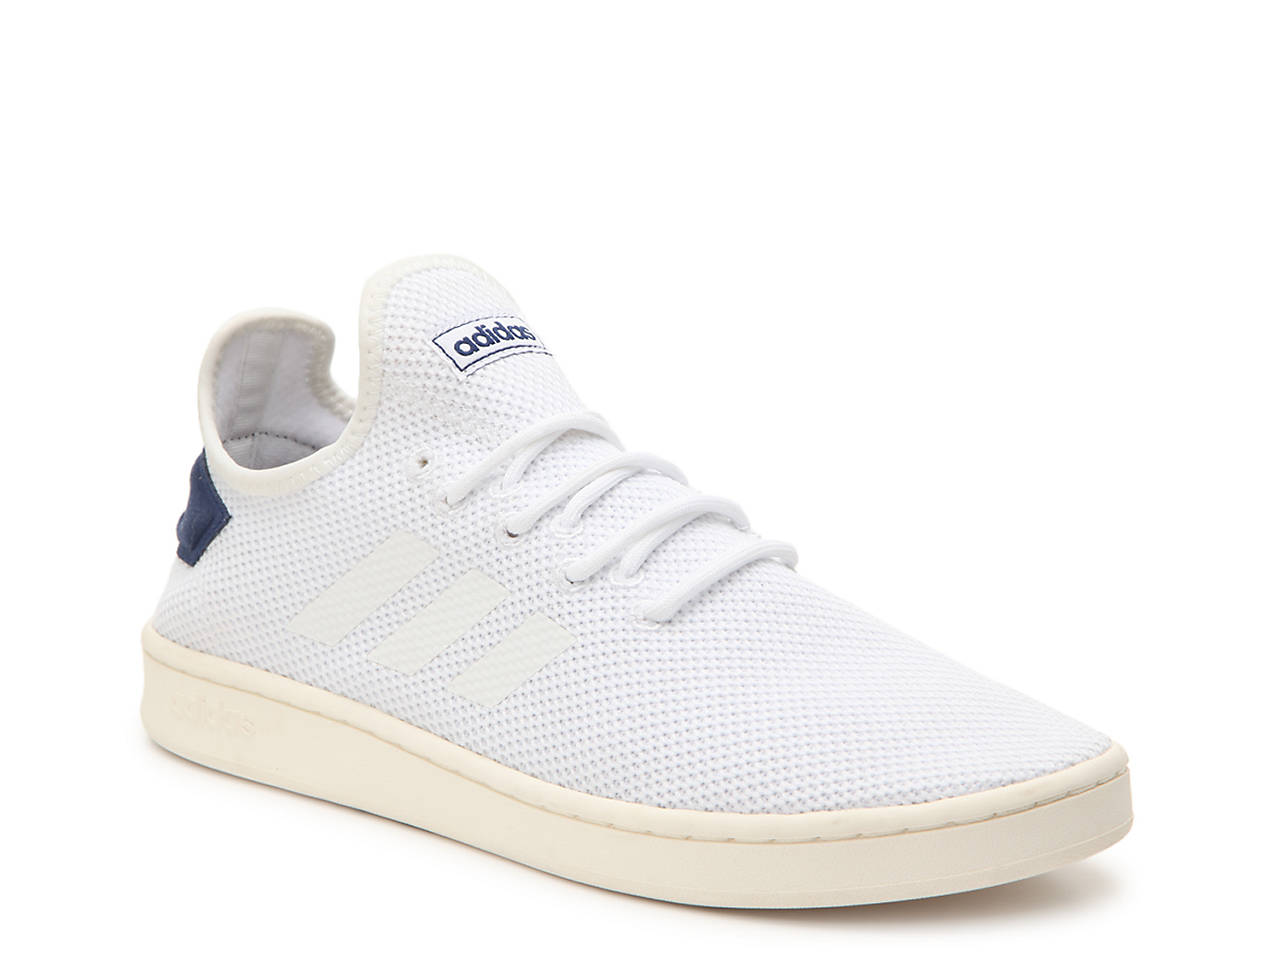 the latest 5f9cd 35236 adidas Court Adapt Sneaker - Mens Mens Shoes  DSW